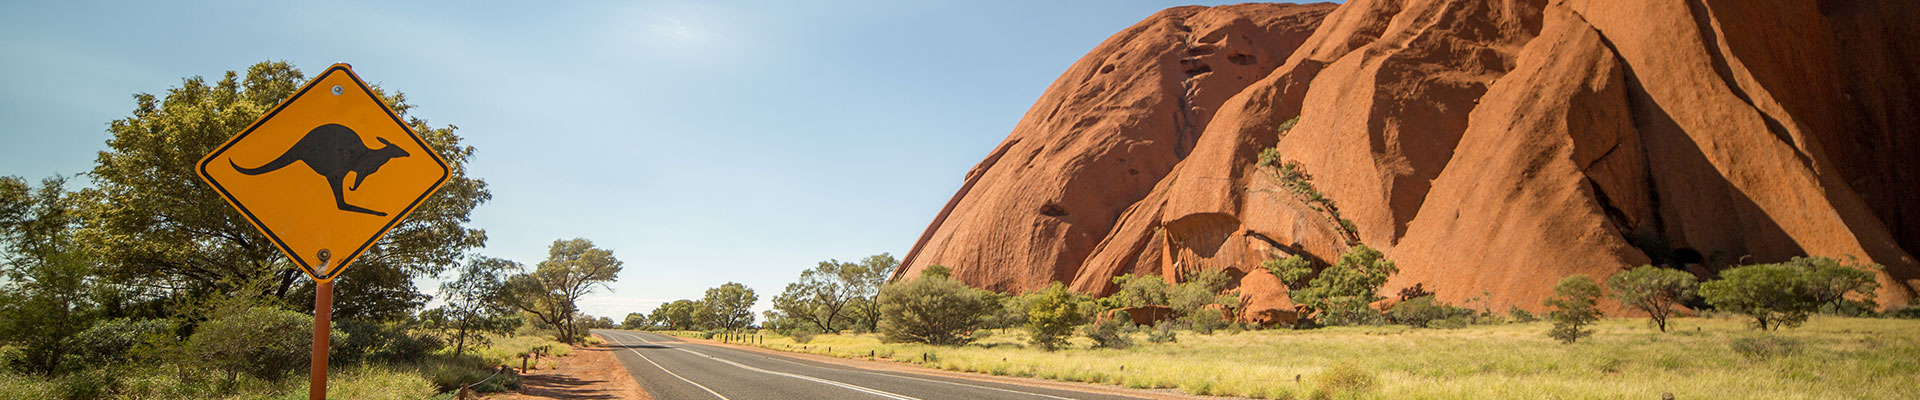 Fantasy RV Tours: 8 Day Real Outback Add-on (08OROP-050319)